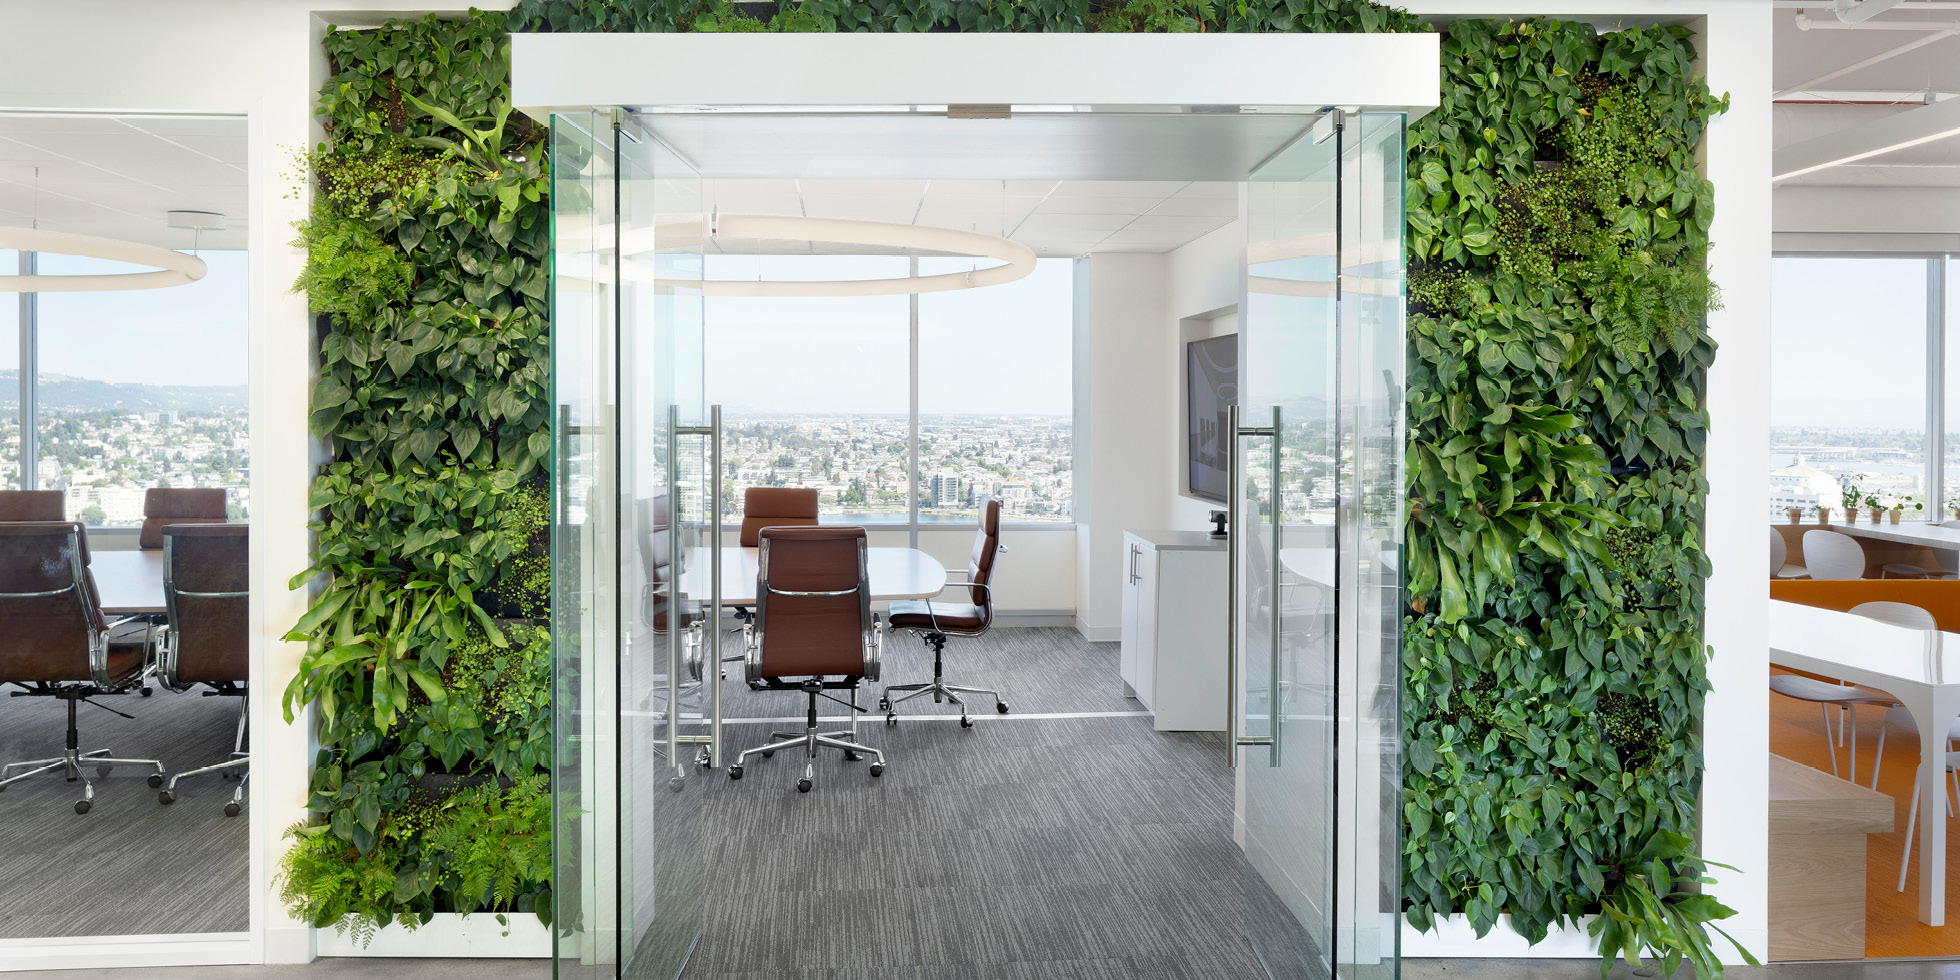 Solar Mosaic Living Wall by Habitat Horticulture - View 2